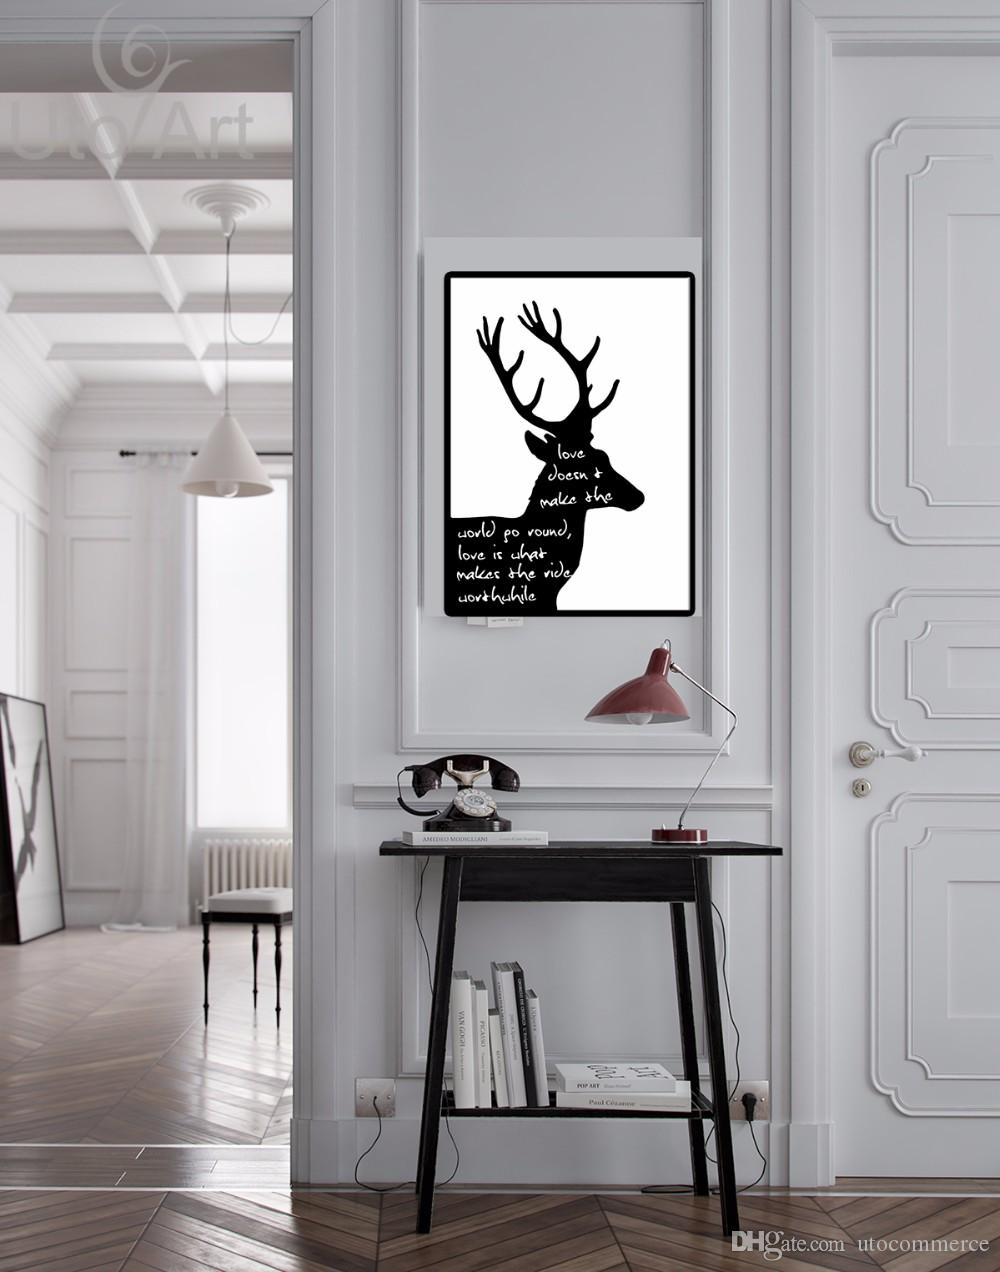 Guarantee Home Decorative Pieces Canvas Art Europe Modular Pictures on the Wall Black and White Canvas Painting Deer for Home